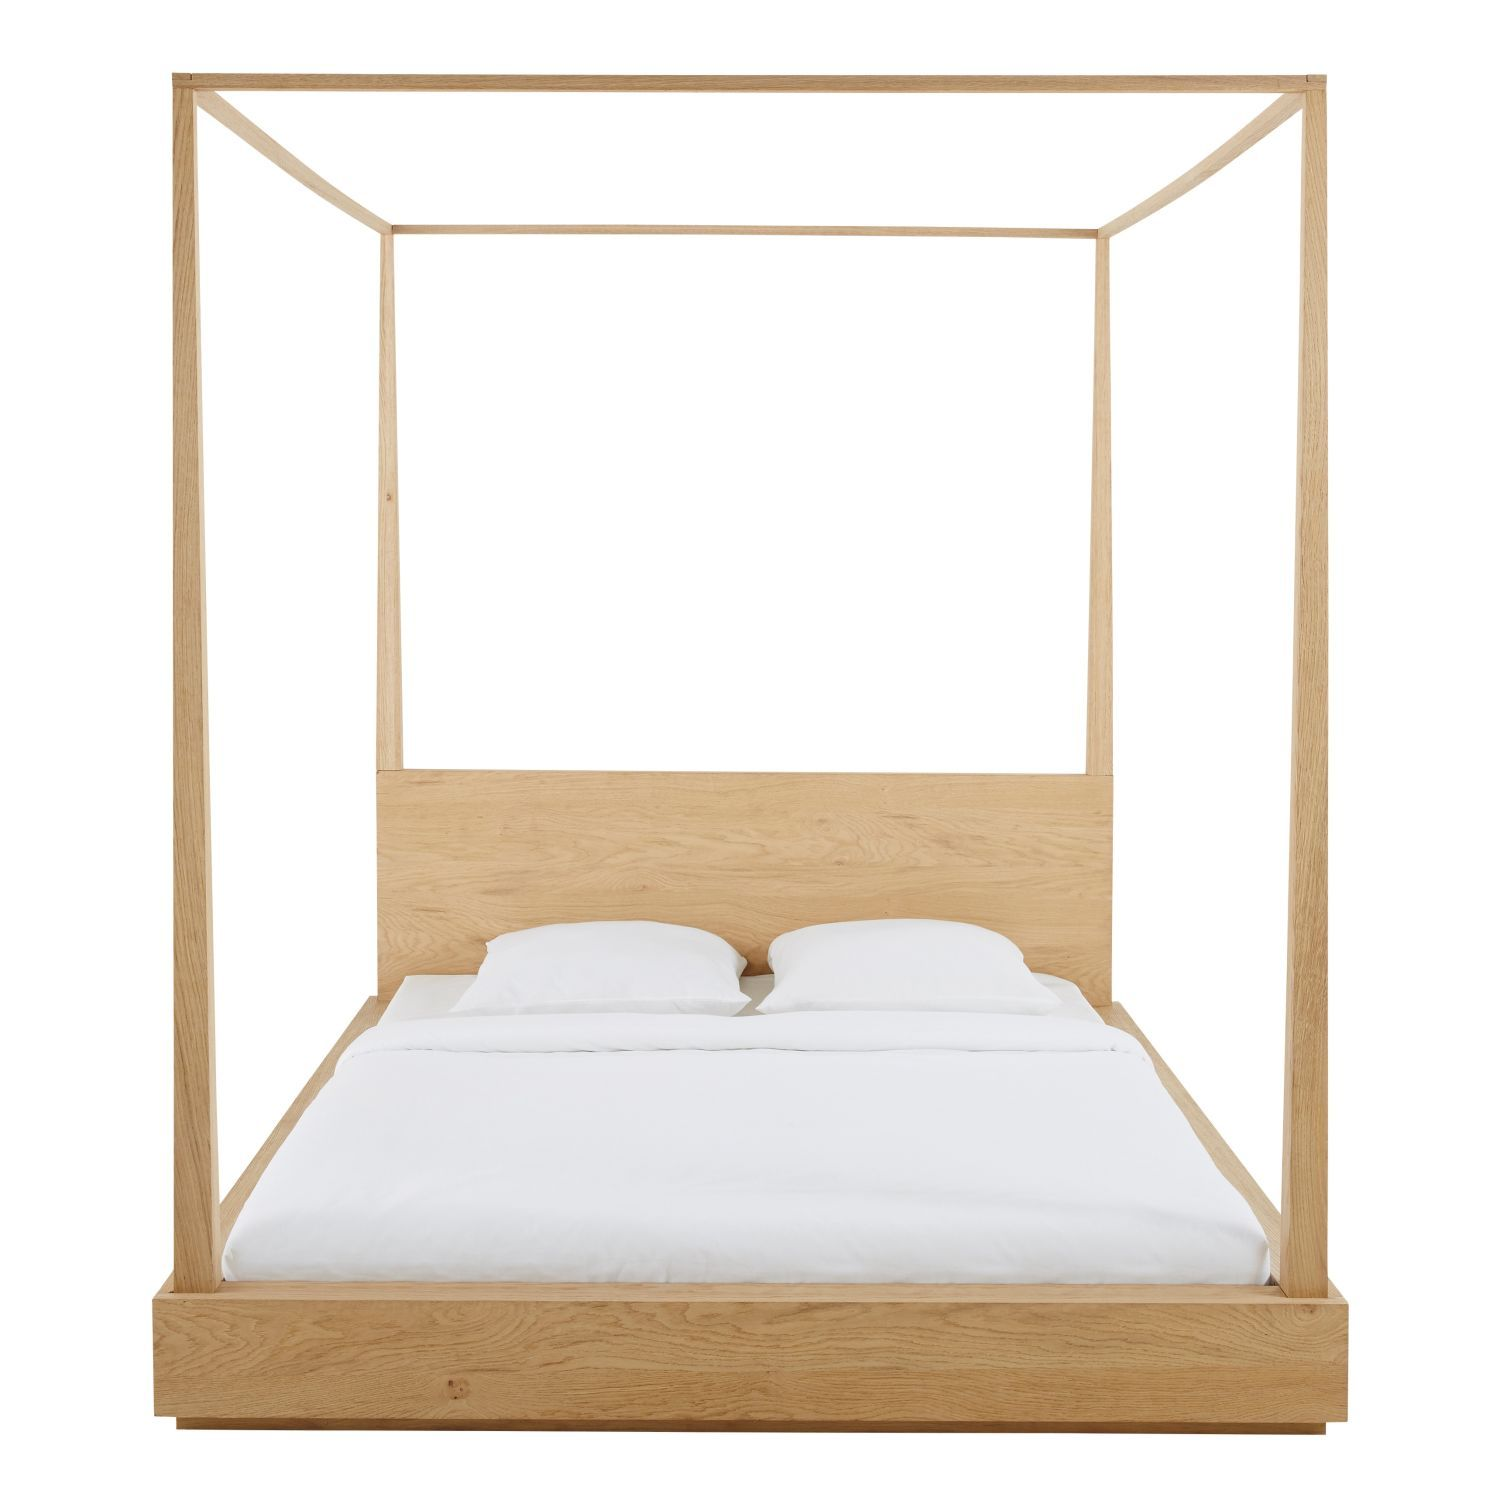 Letto Baldacchino Maison Du Monde.Beds Bedside Tables Headboards Bed Four Poster Bed Furniture